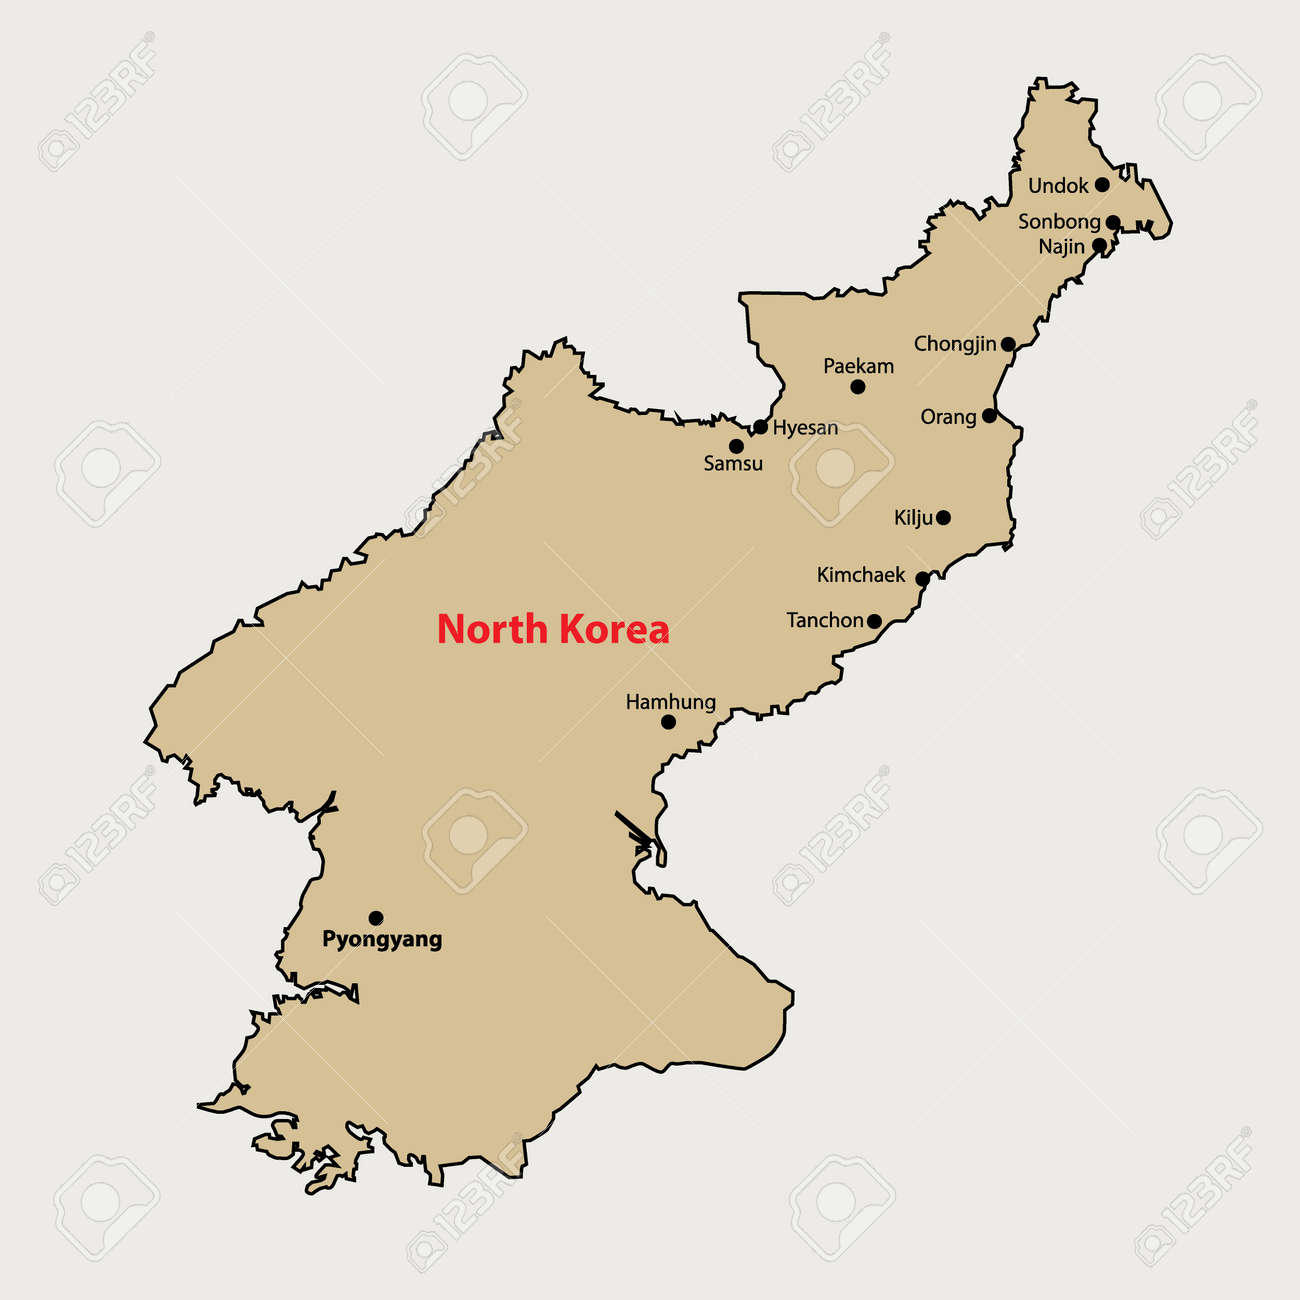 North Korea Simple Outline Map With Cities Royalty Free Cliparts